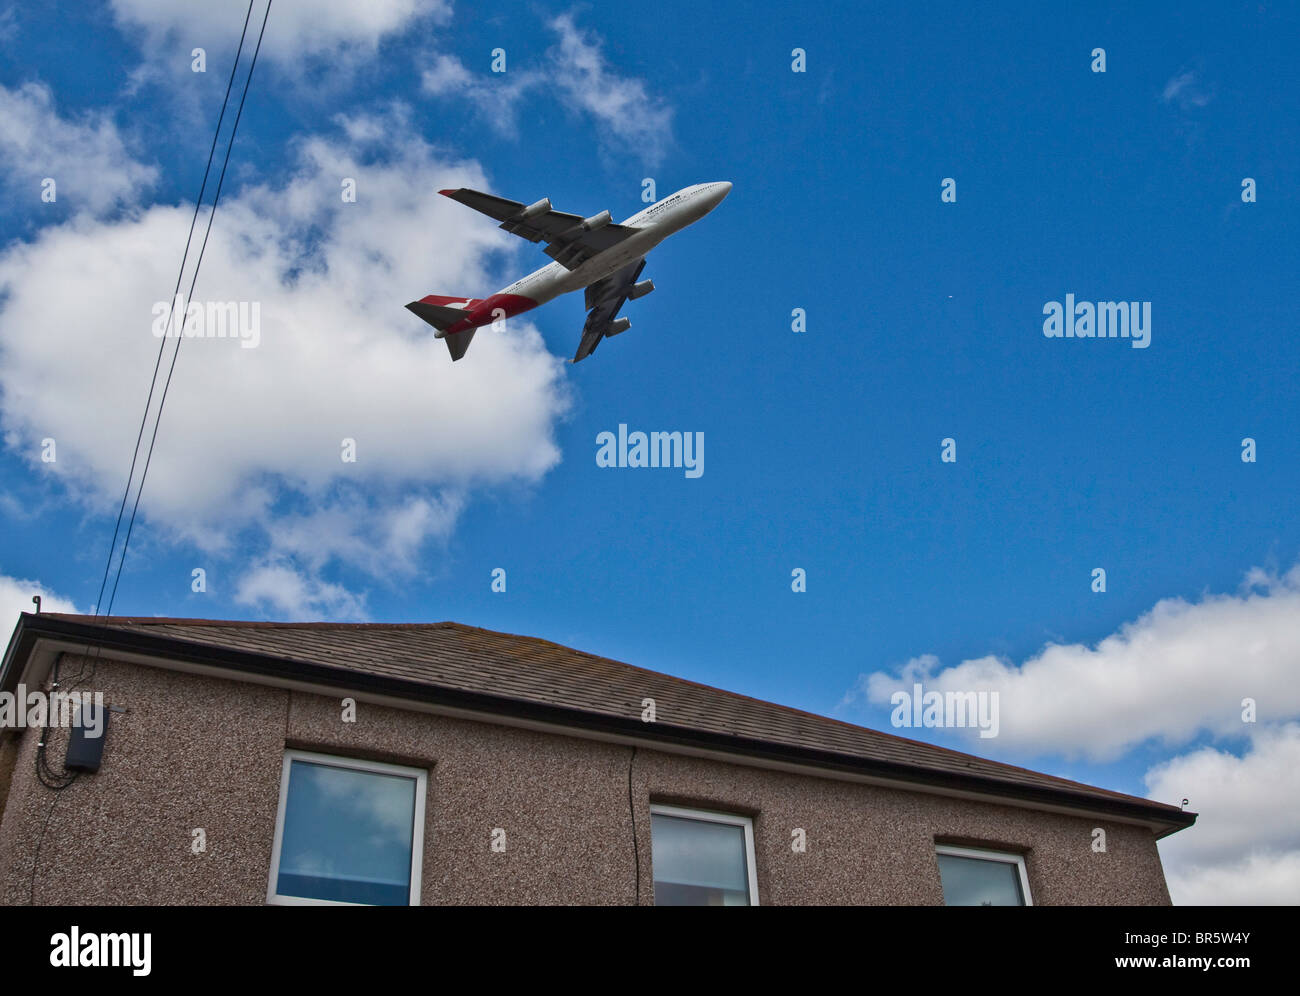 A plane taking off from London's Heathrow Airport and flying over the Hatton Cross area of Hounslow Borough. - Stock Image